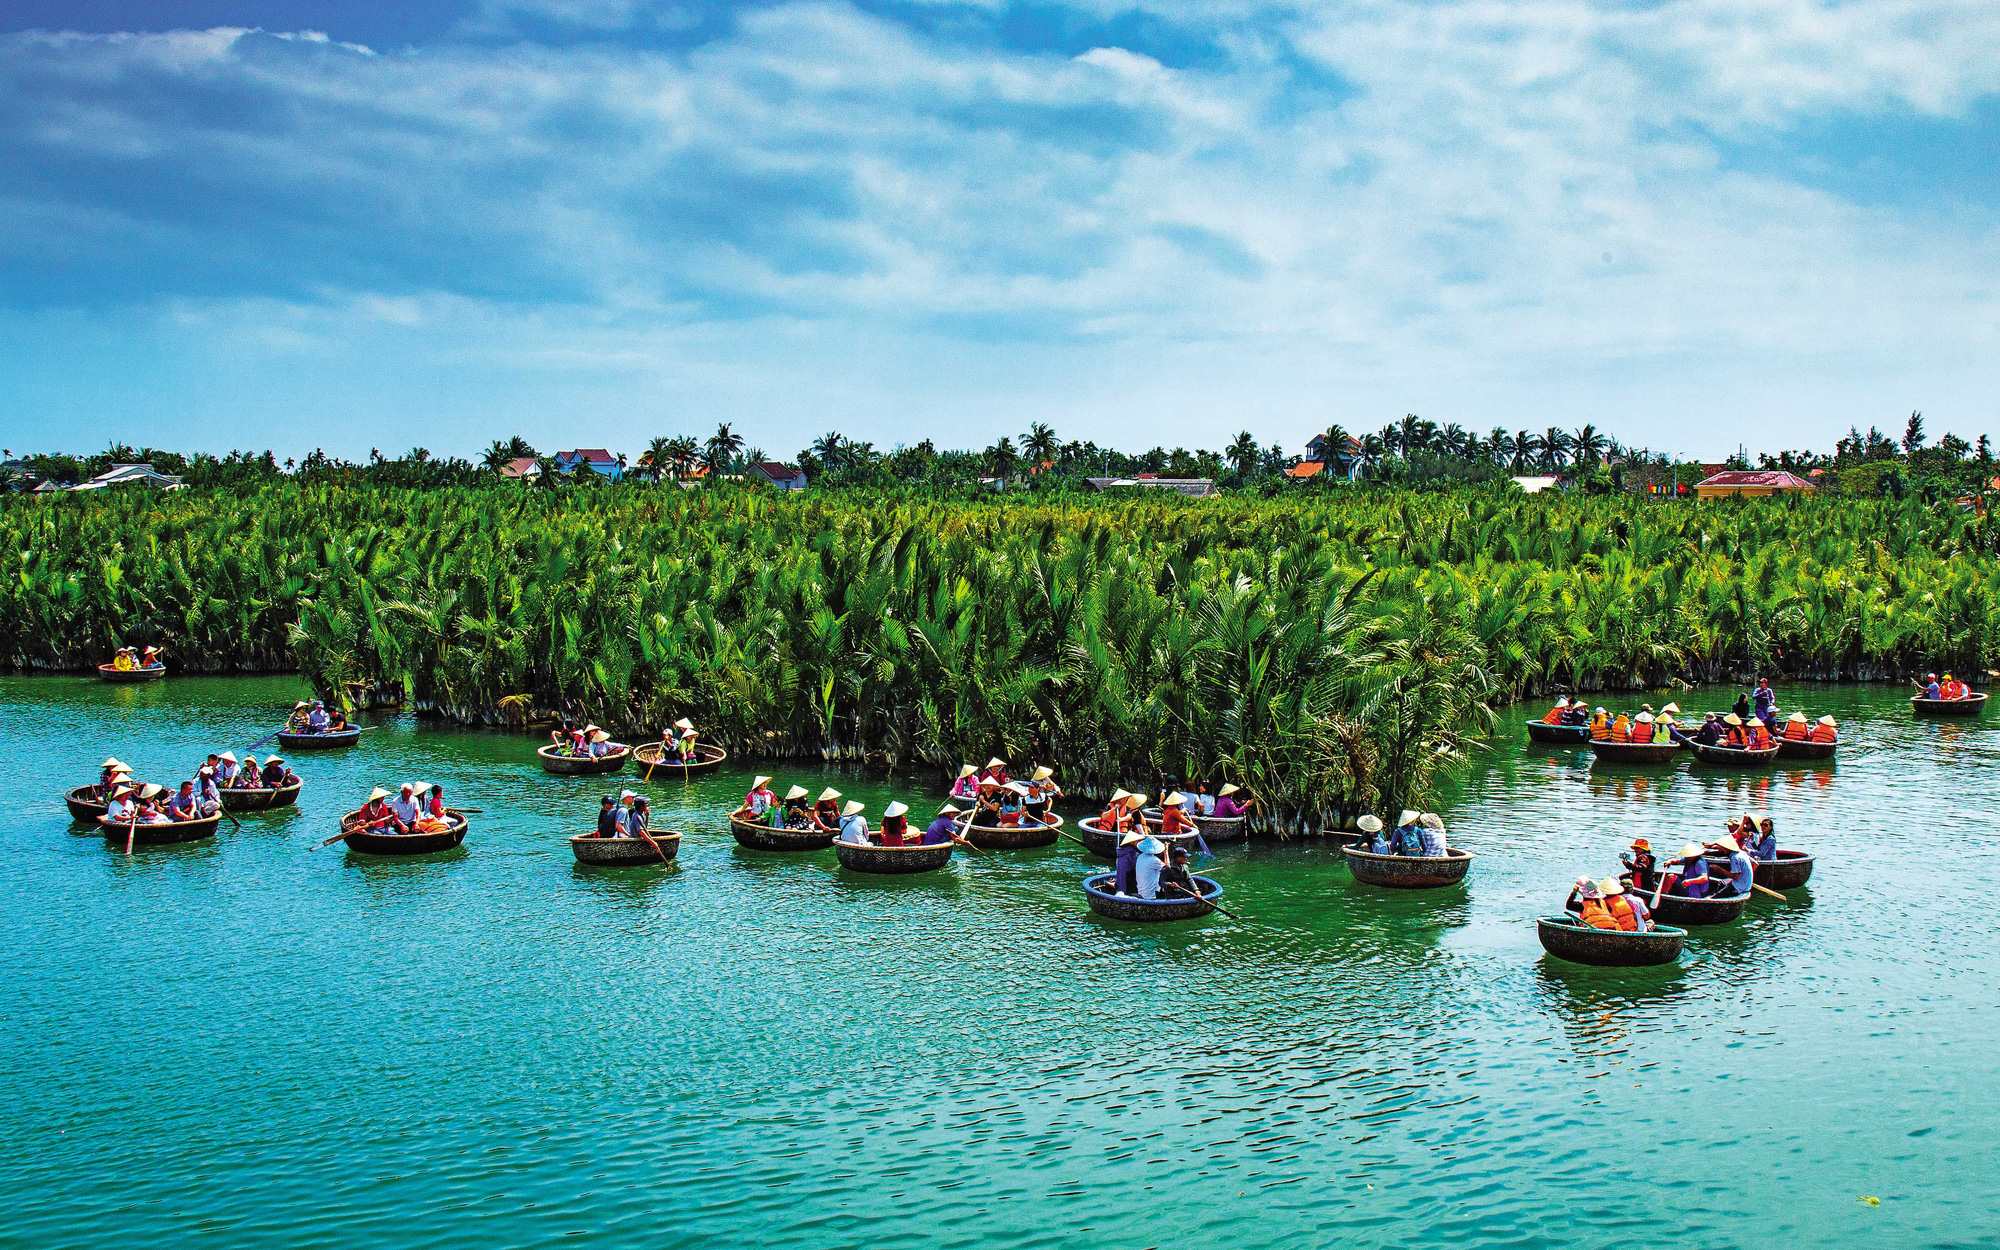 Travel firms contribute to offsetting climate change with tree-planting tours in Hoi An